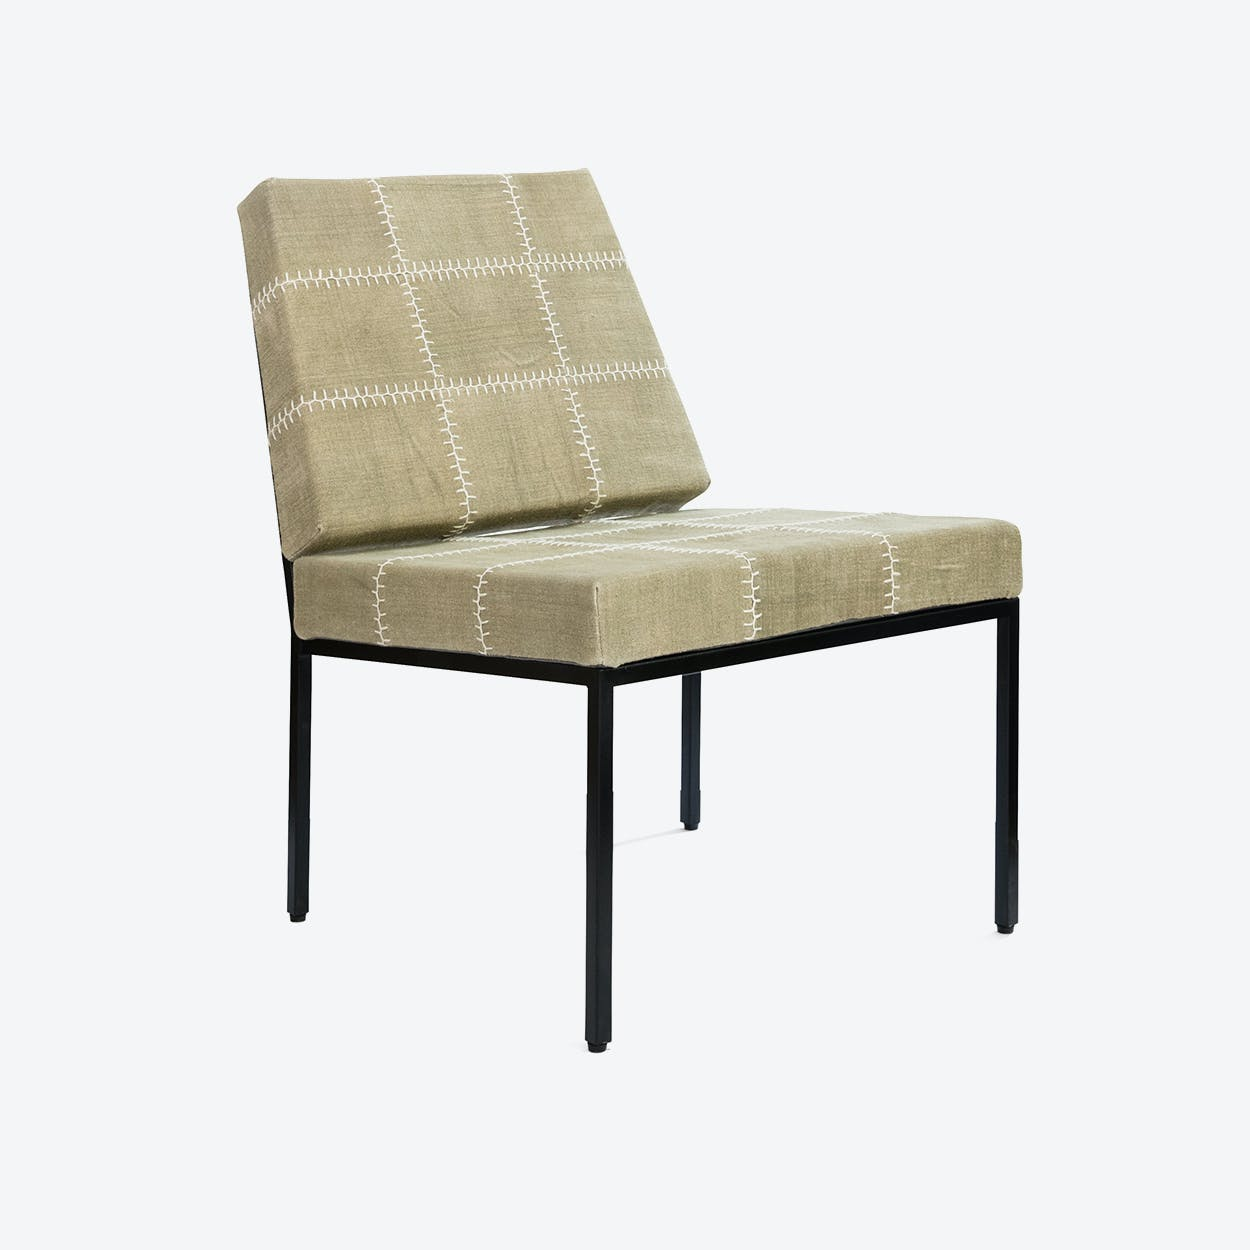 Cheyenne Khaki-Green Stone-Wash Chair